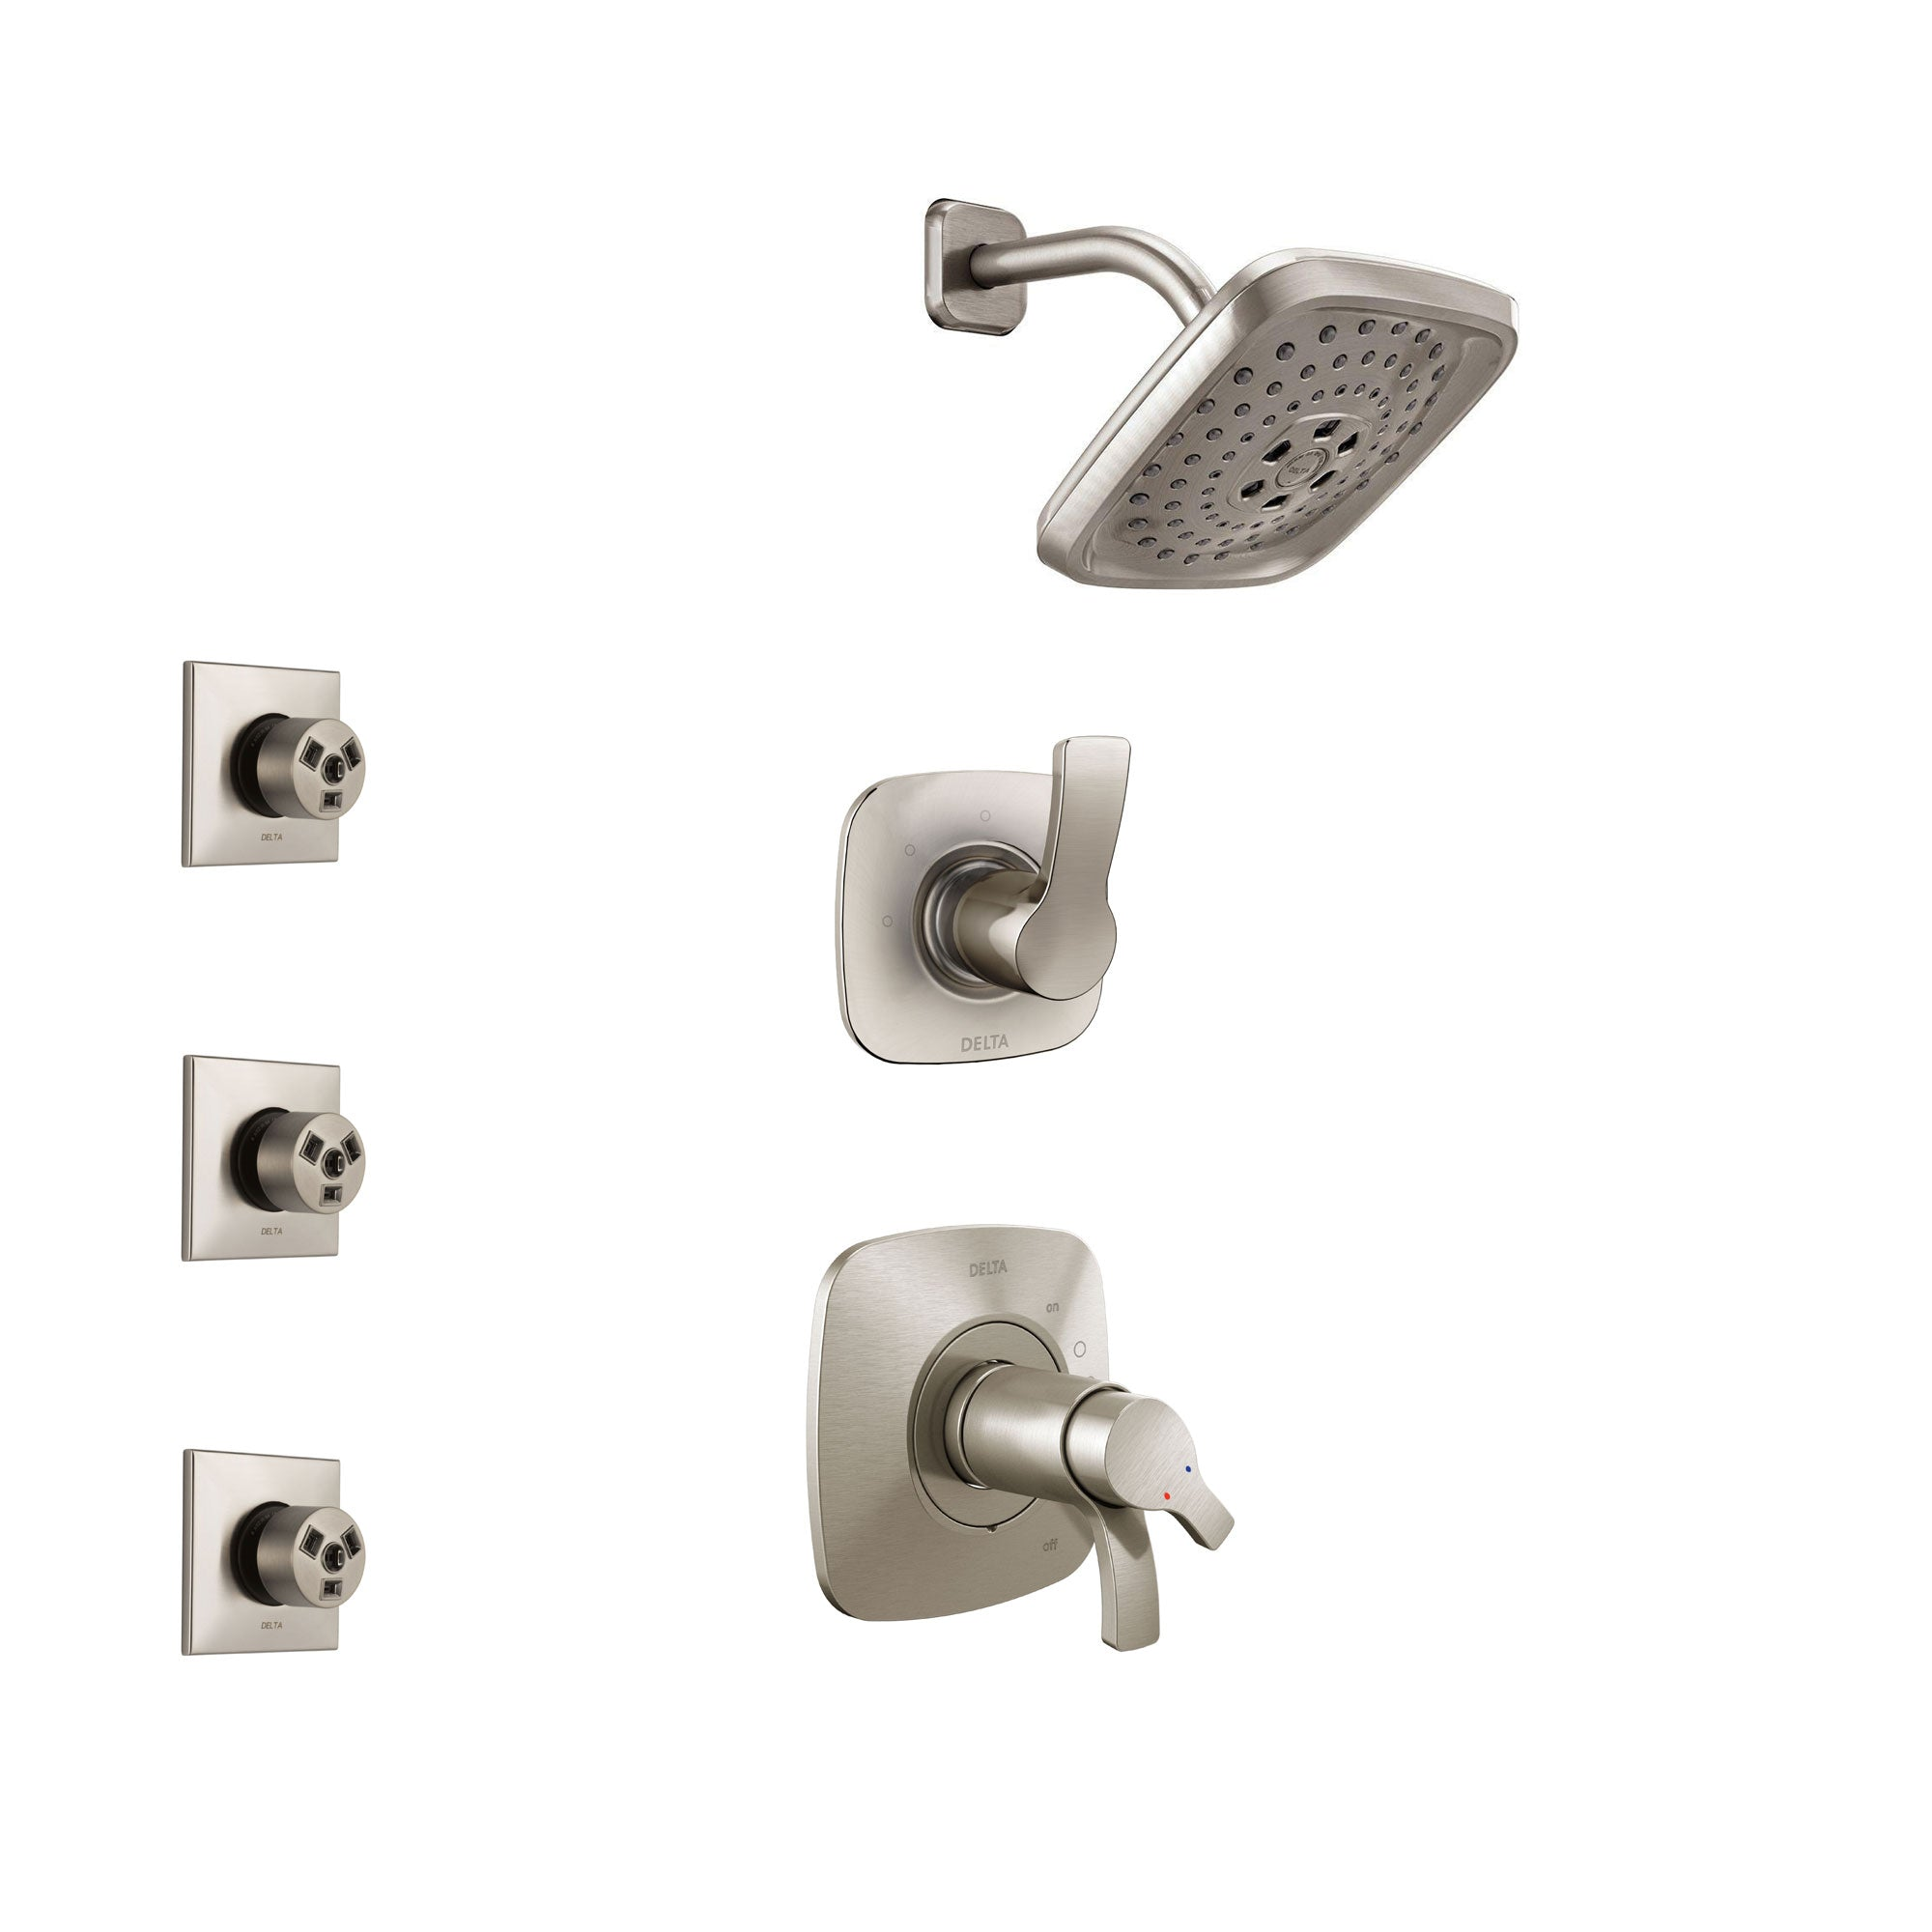 Delta Tesla Stainless Steel Finish Shower System with Dual Thermostatic Control Handle, 3-Setting Diverter, Showerhead, and 3 Body Sprays SS17T2522SS2